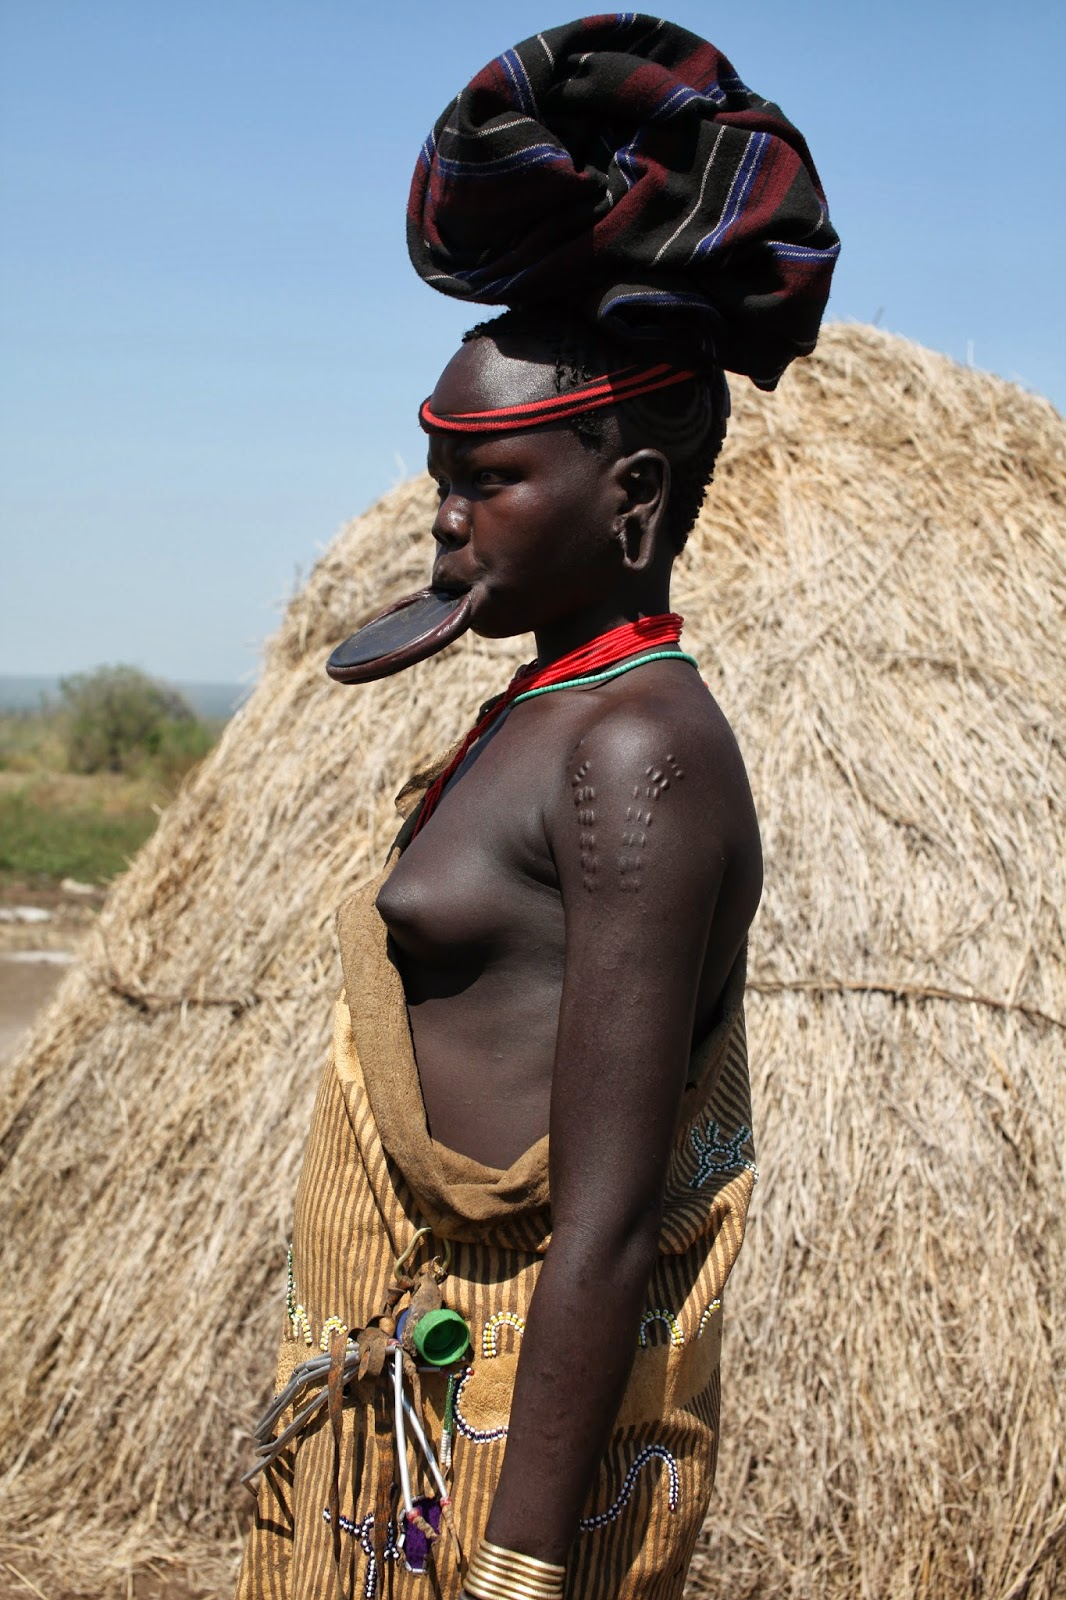 Profile of Young Mursi Girl showing Lip Plate, Body Scarification and the bangles made from brass bullet casings